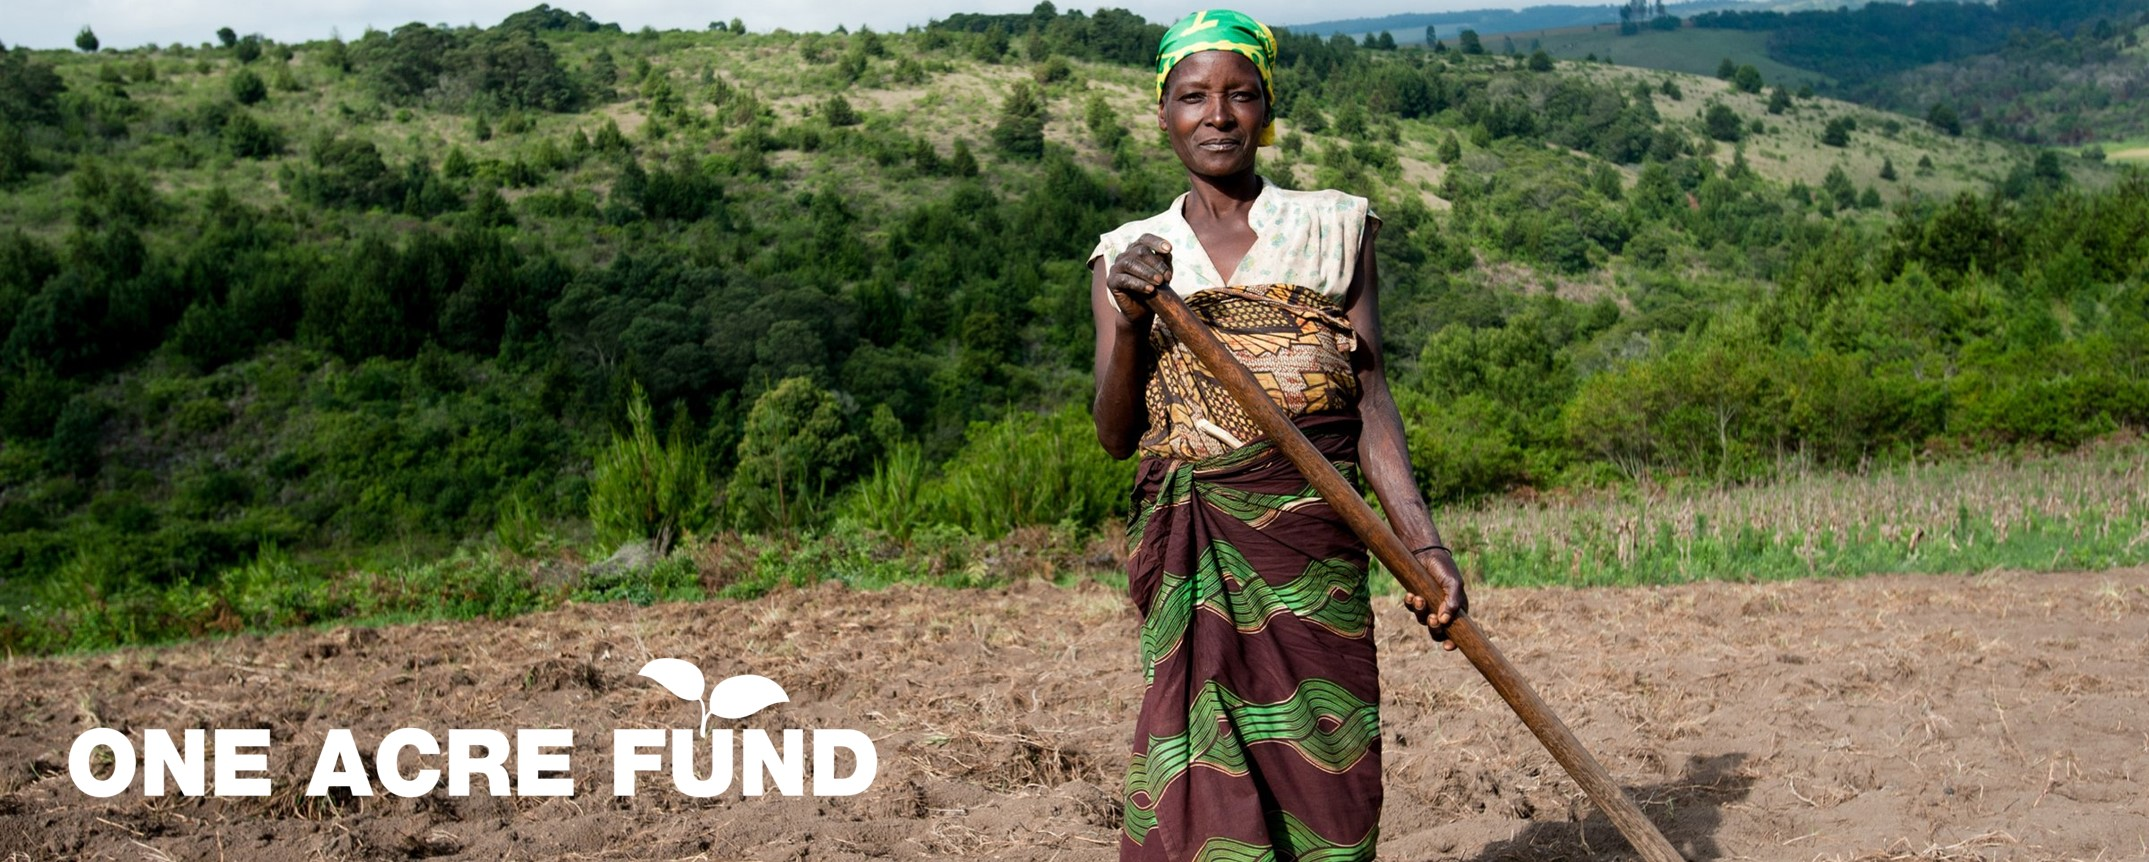 One Acre Fund - Research Role Movemeback African opportunity cover image